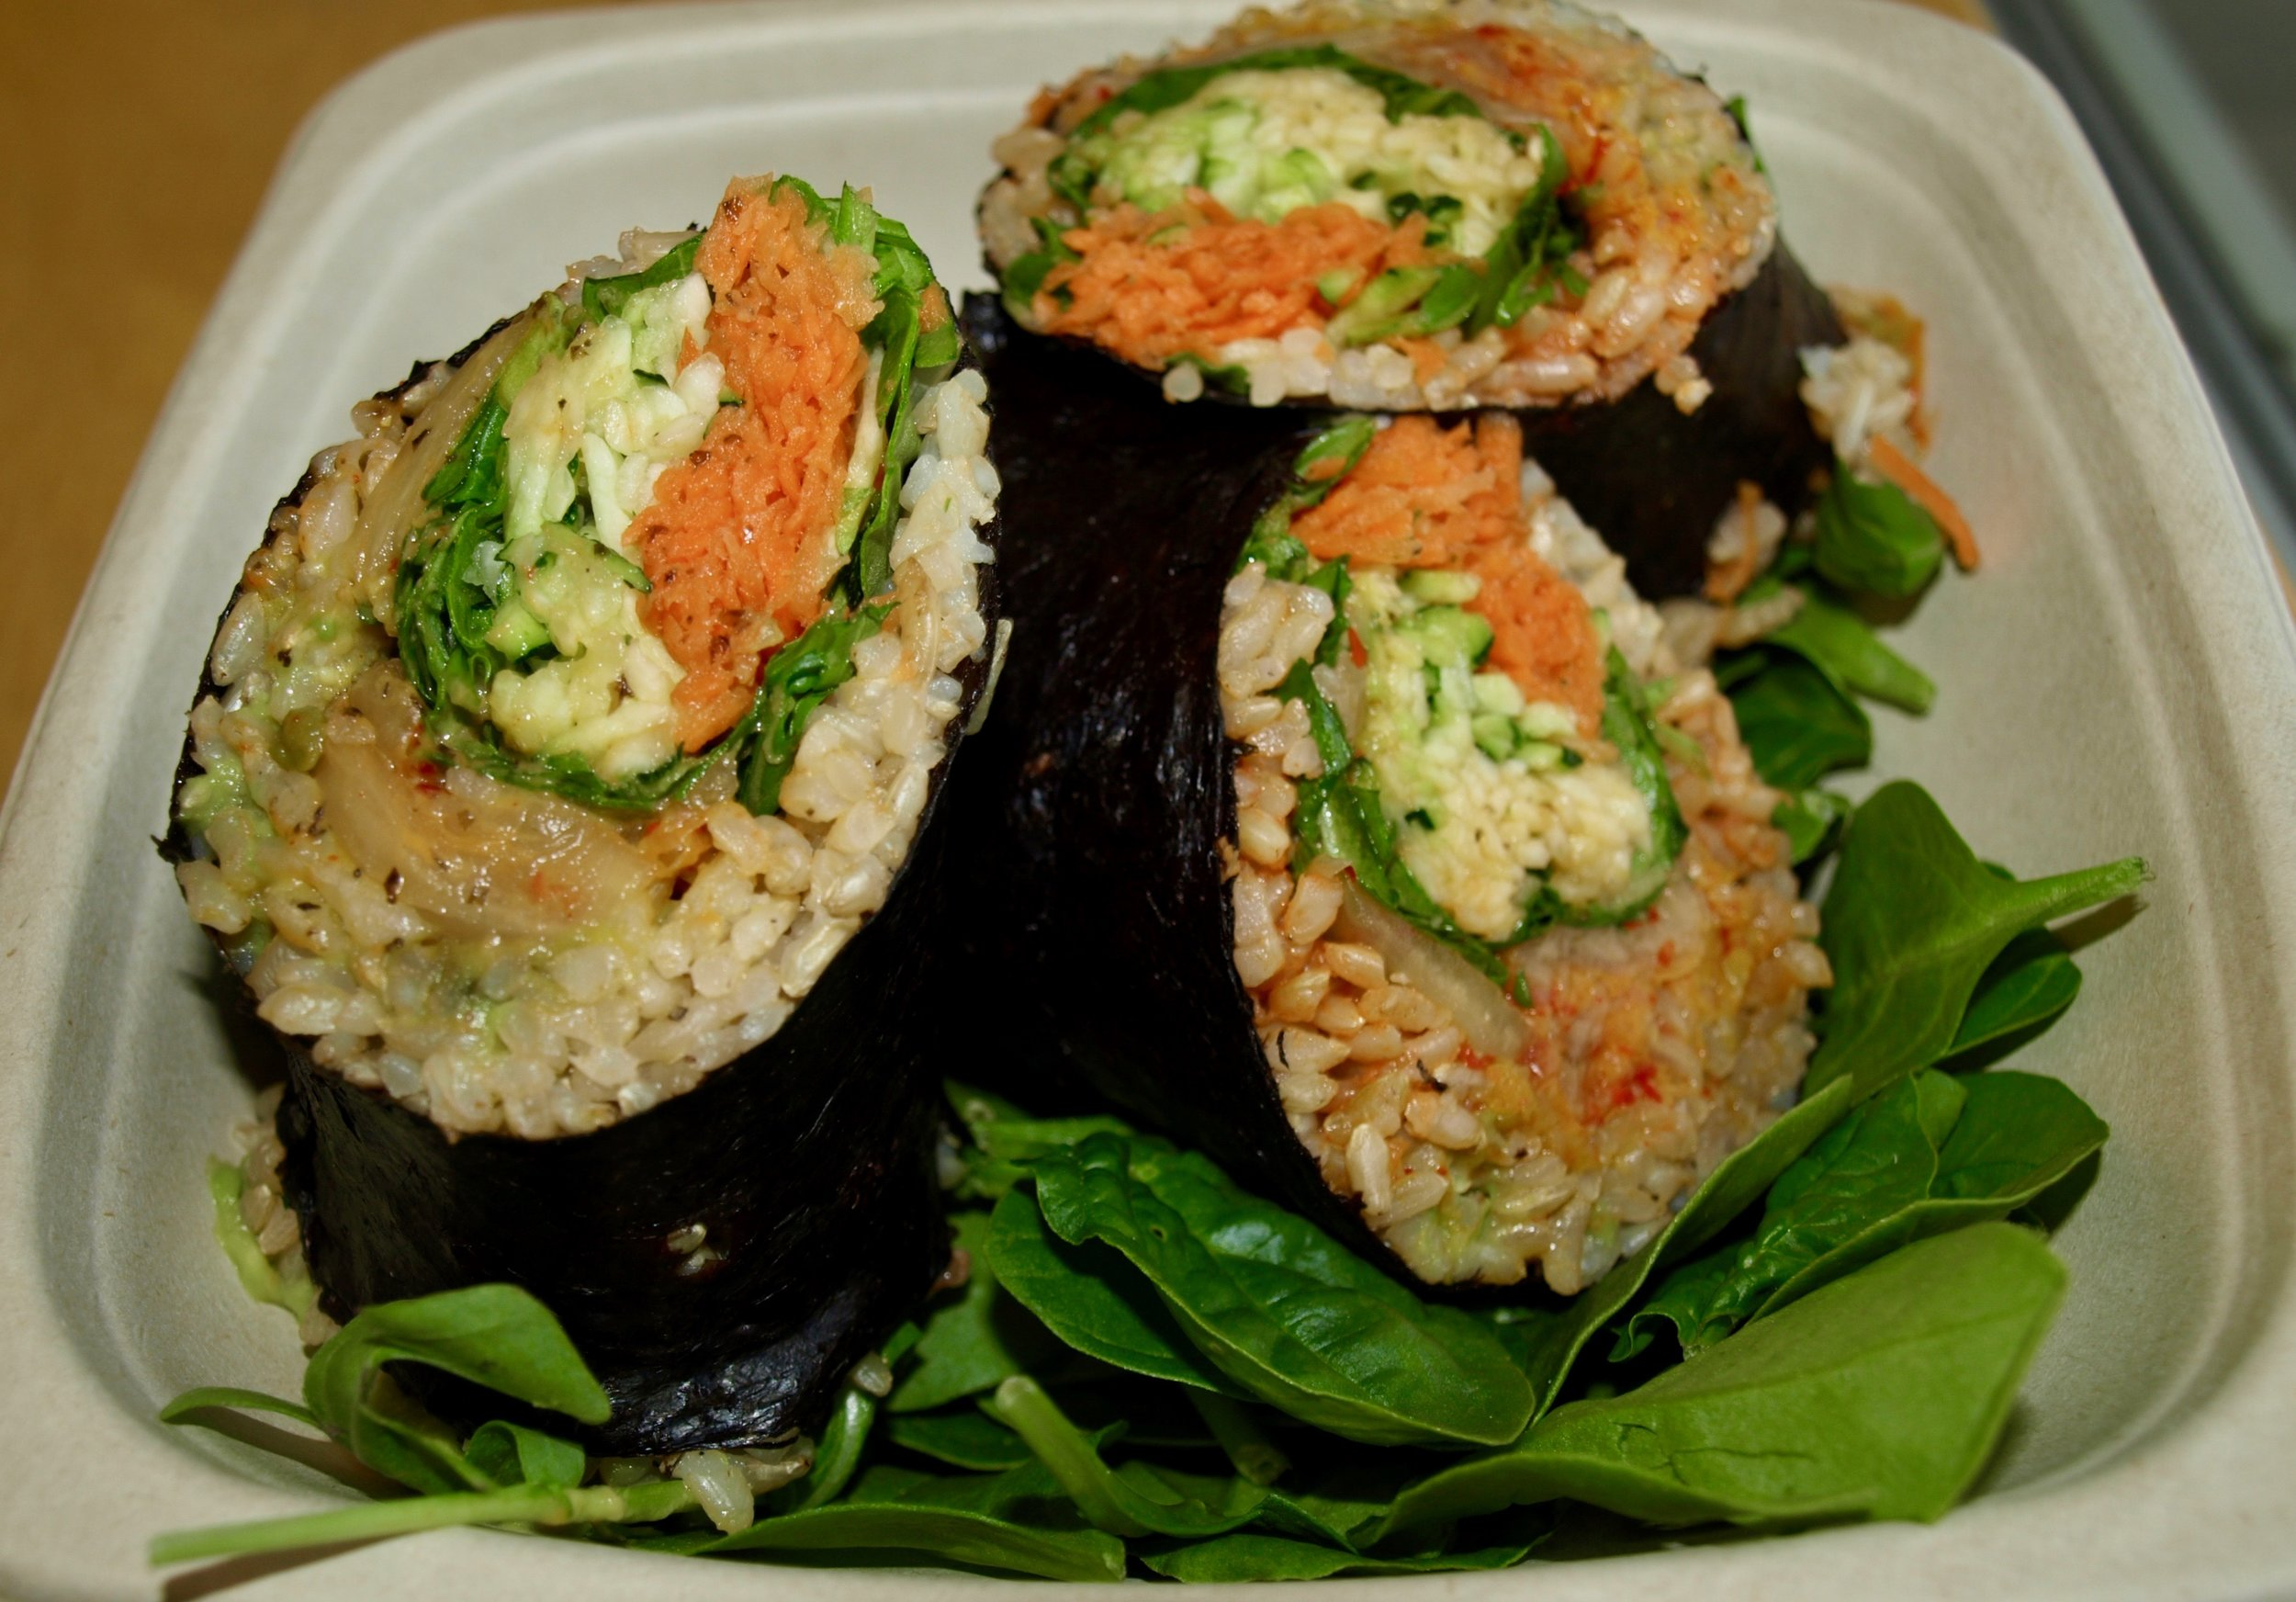 The zen roll, with spicy kimchi, brown rice, avocado mash, zucchini noodles, arugula, carrots, and thai dressing.